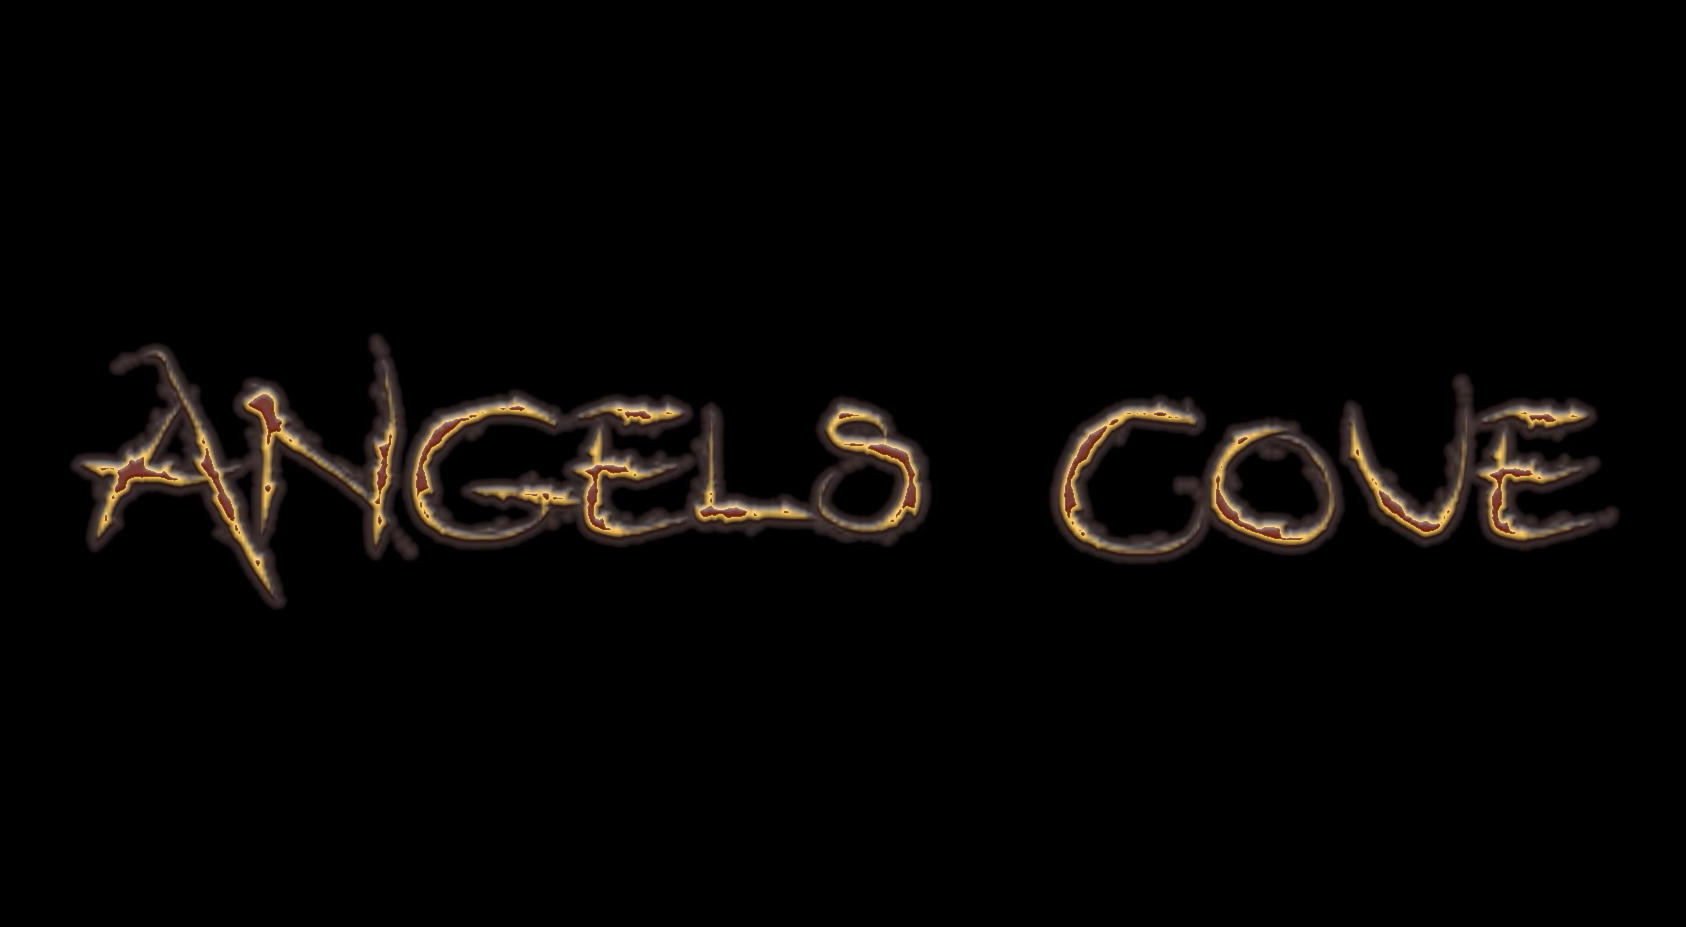 Angels Cove Free Download